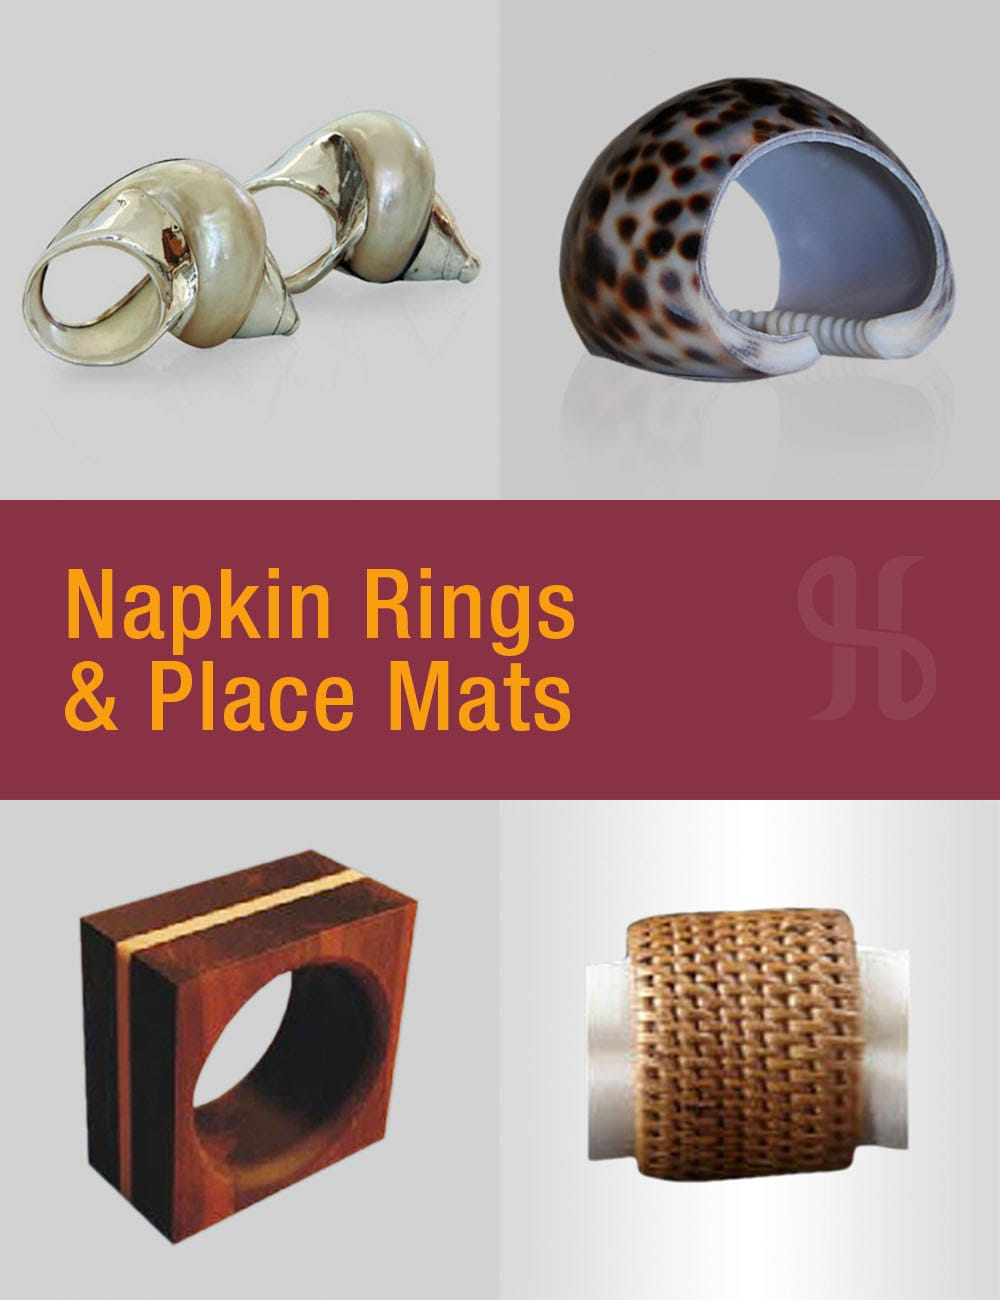 Napkin Rings and Place Mats